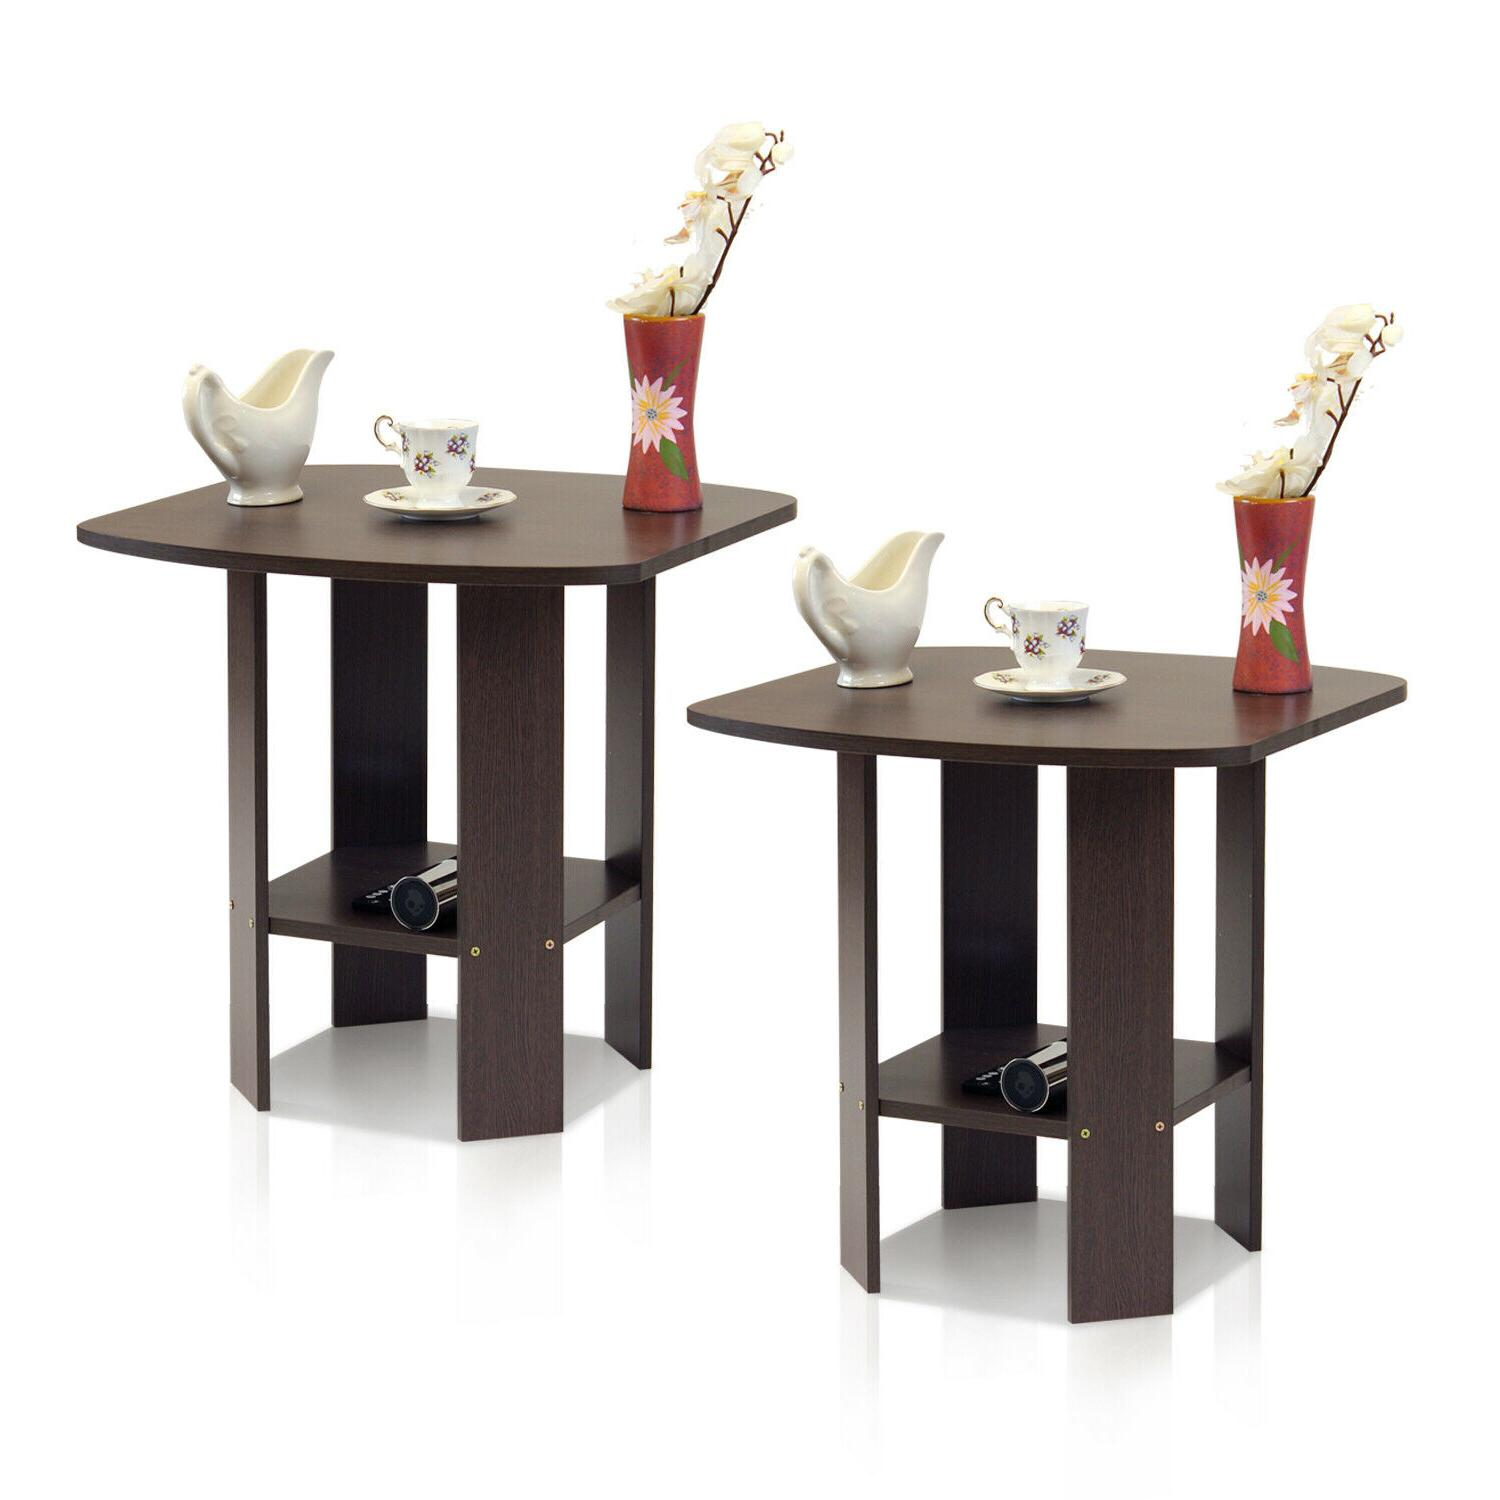 Set of Side Table Table Night Table Shelf